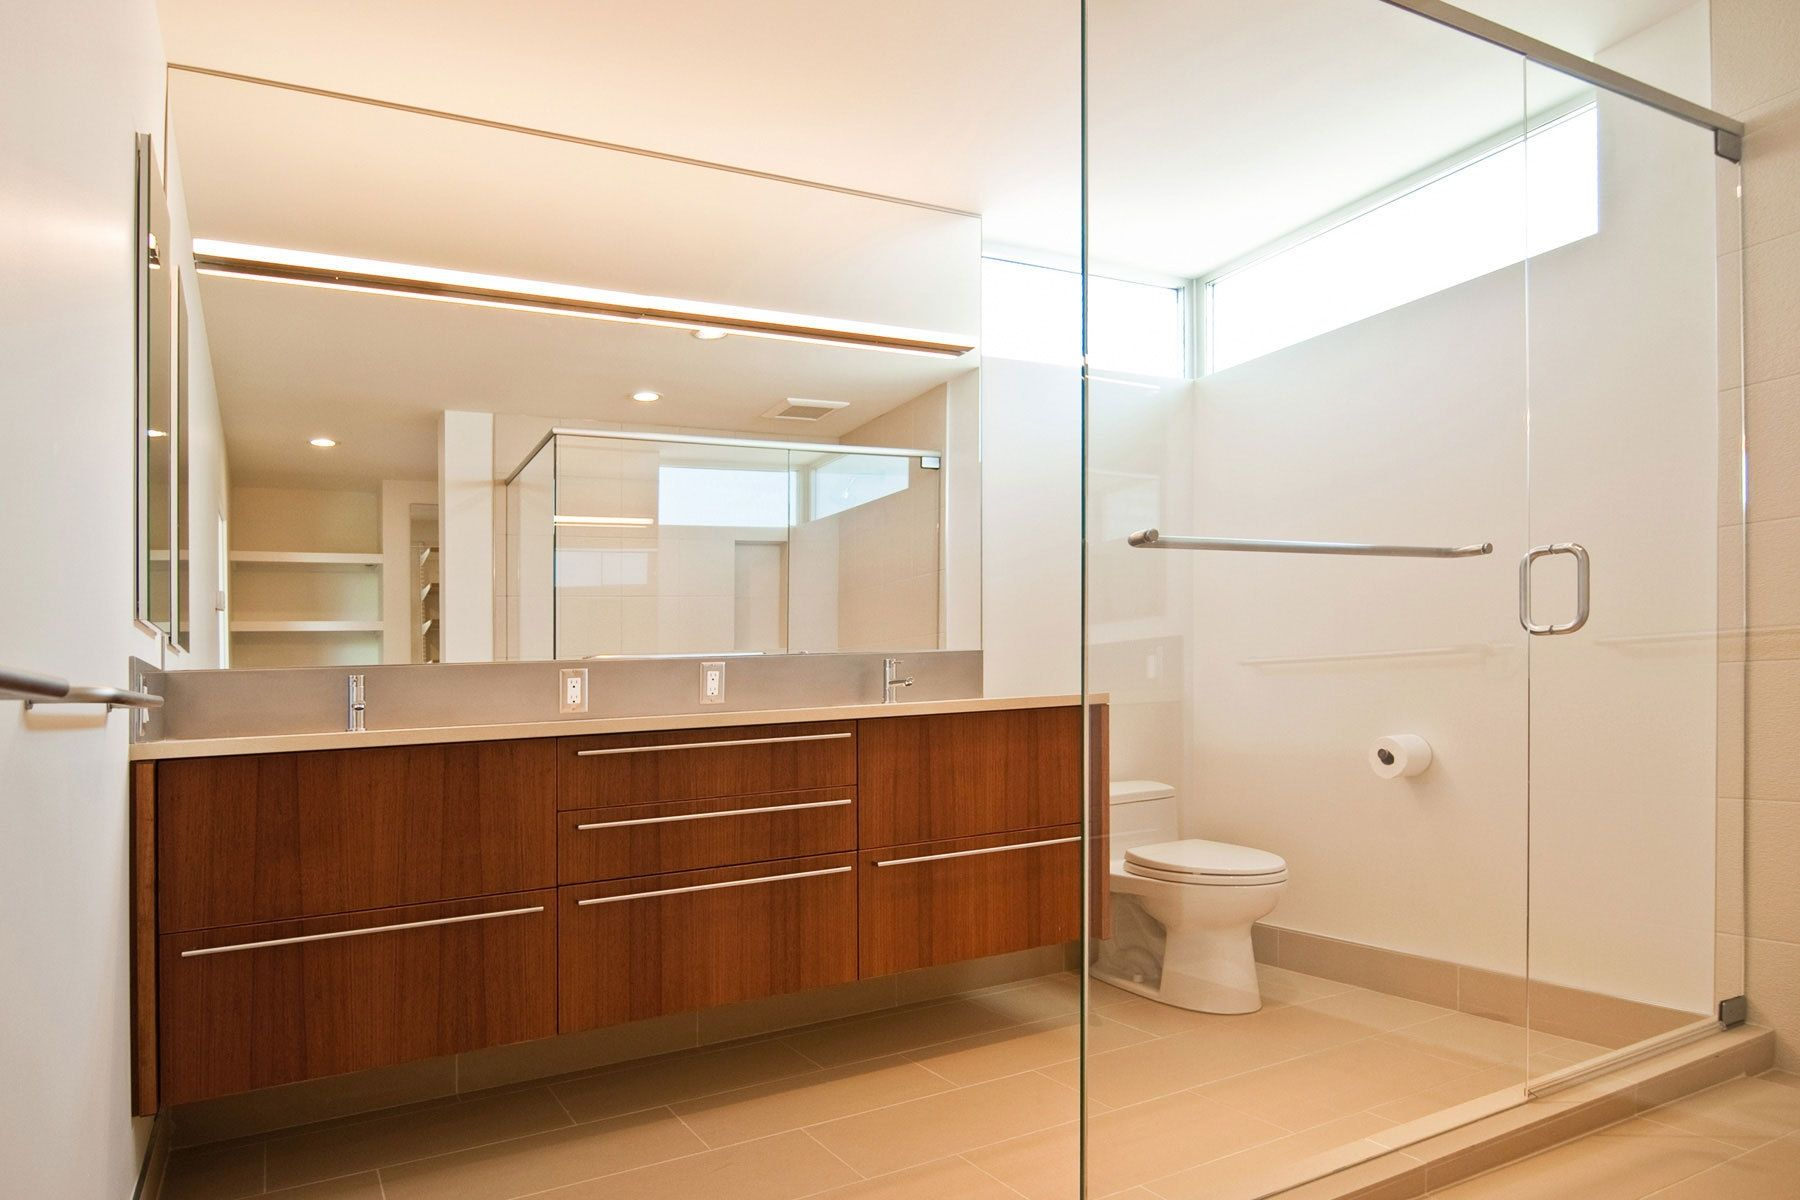 Modern Bathroom Cabinets Designs house and land packages perth wa | new homes | home designs